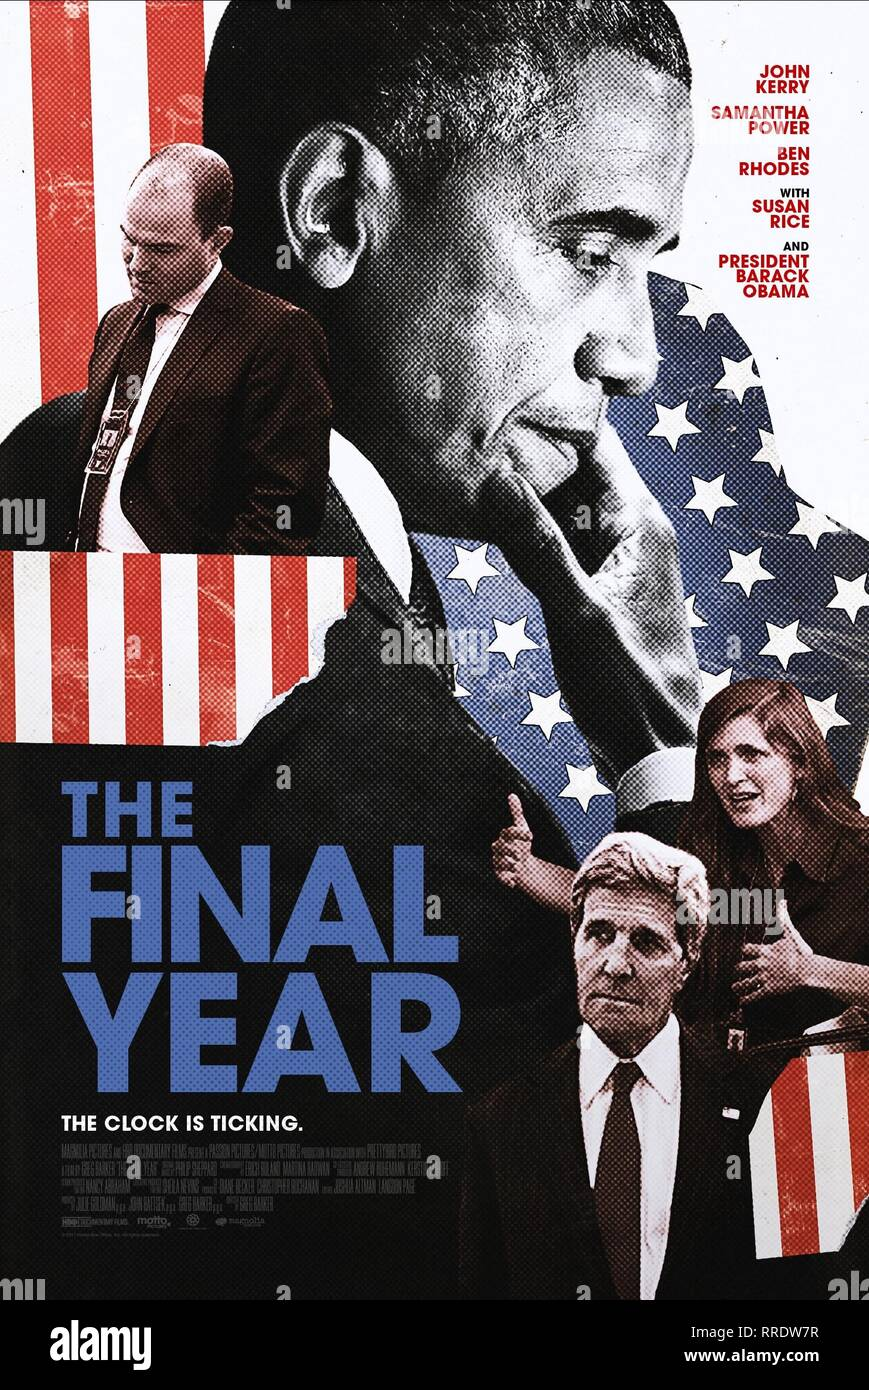 THE FINAL YEAR, MOVIE POSTER, 2017 - Stock Image